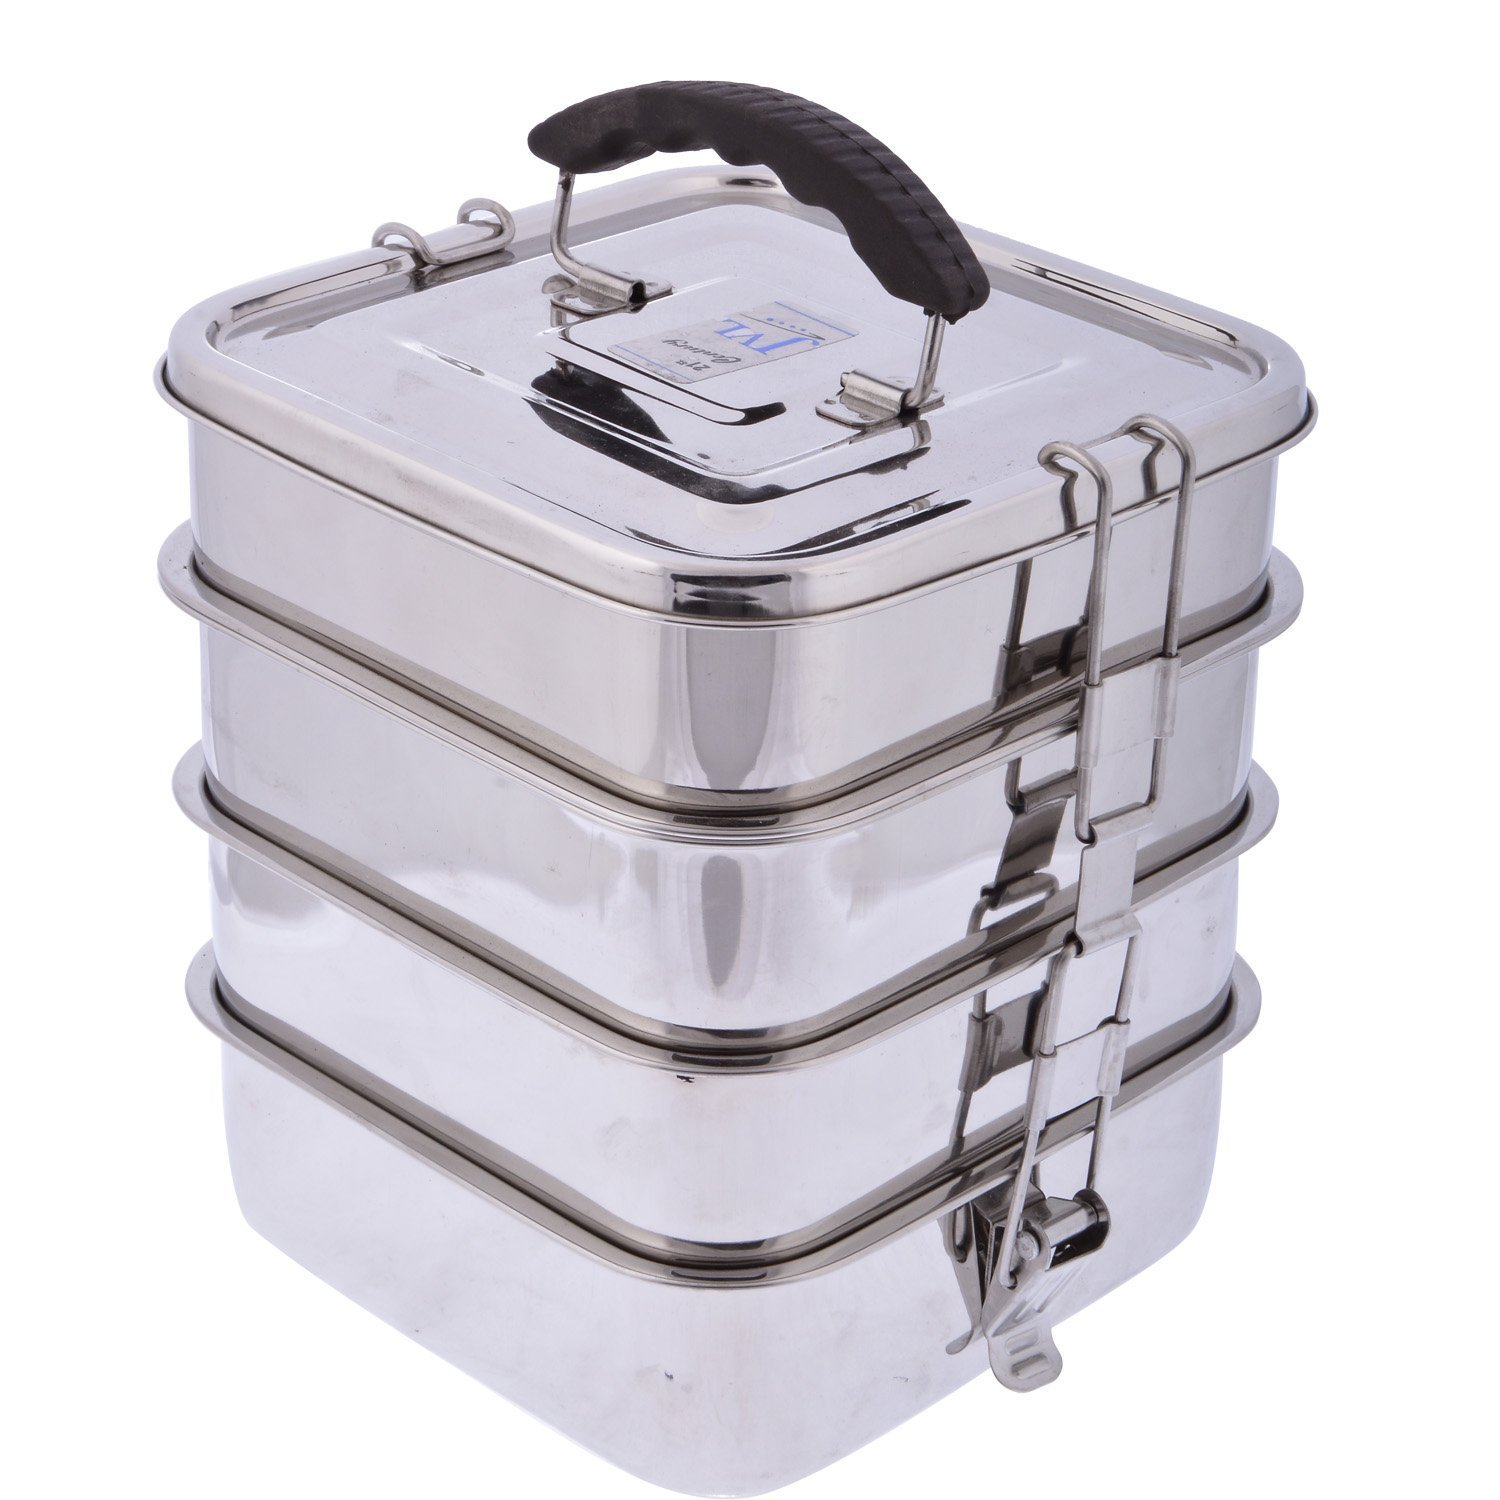 Heavy duty stainless steel 4 tier square bento lunch box bag meal tiffin set travel 4 plates - small containers inside and spoons by Zmatoo